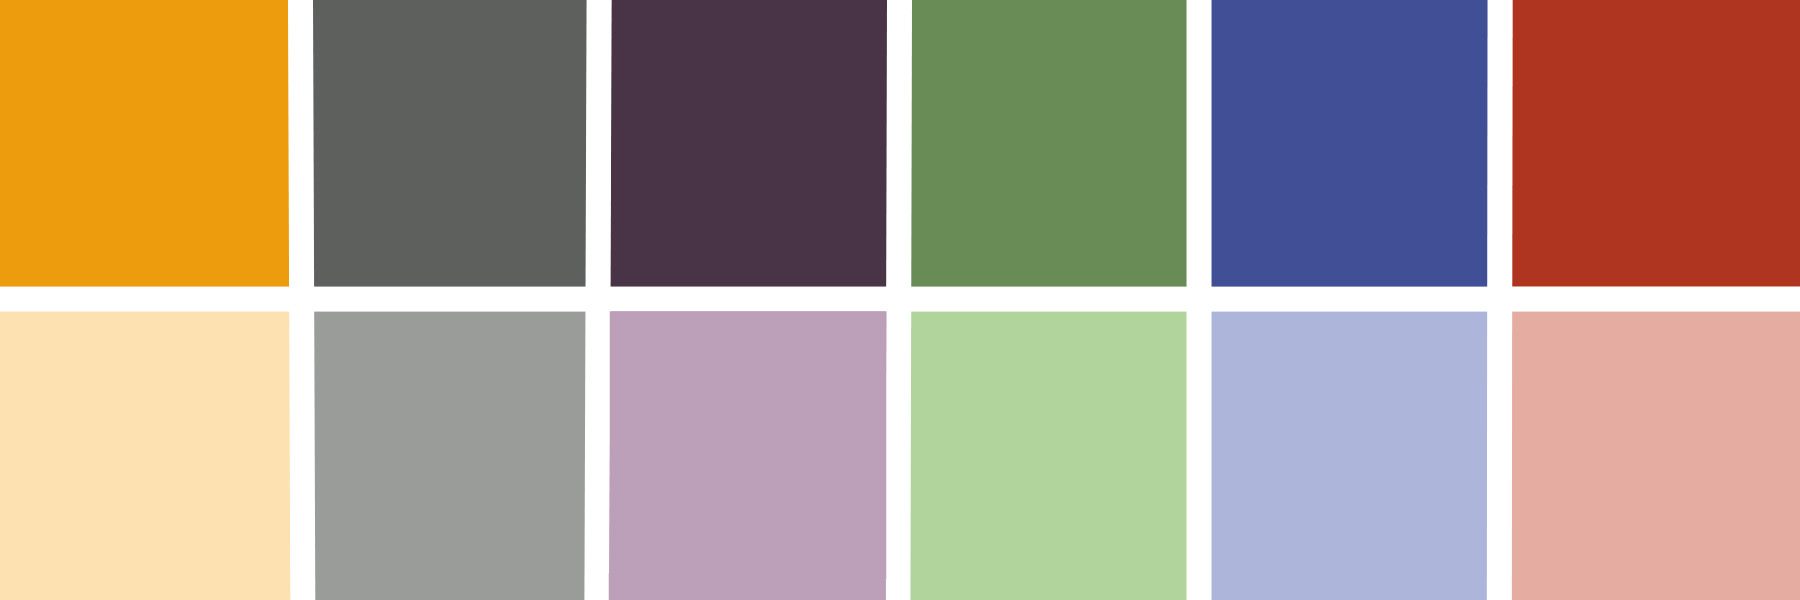 Pastel colors for What are pastel colors